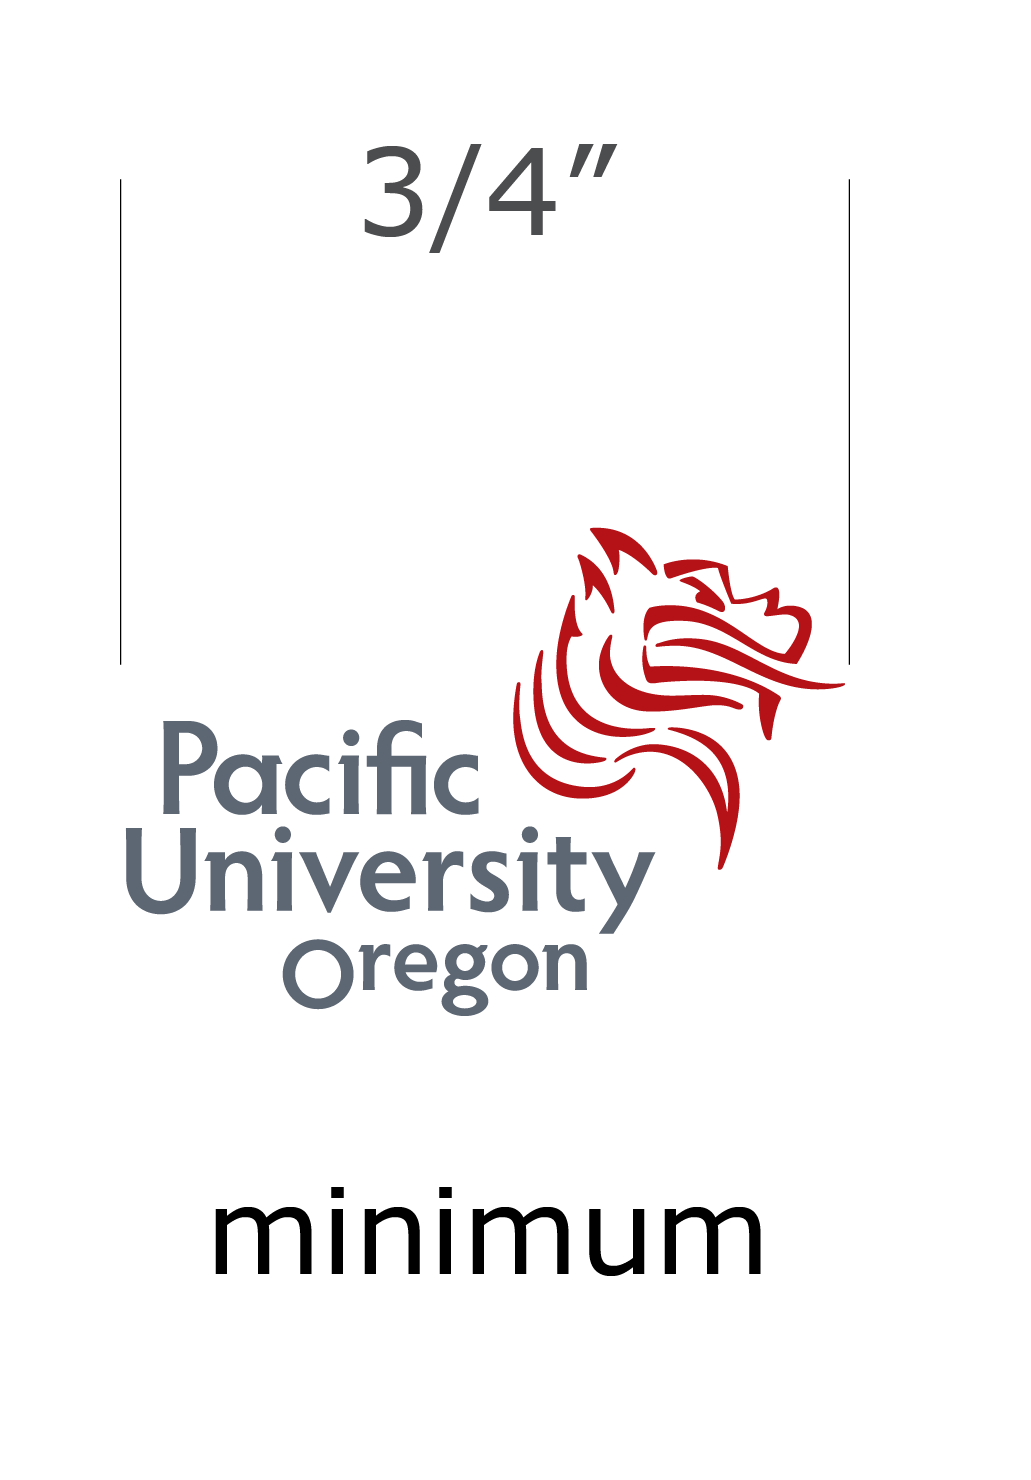 The Pacific University logo has a minimum width of 3/4 inch.